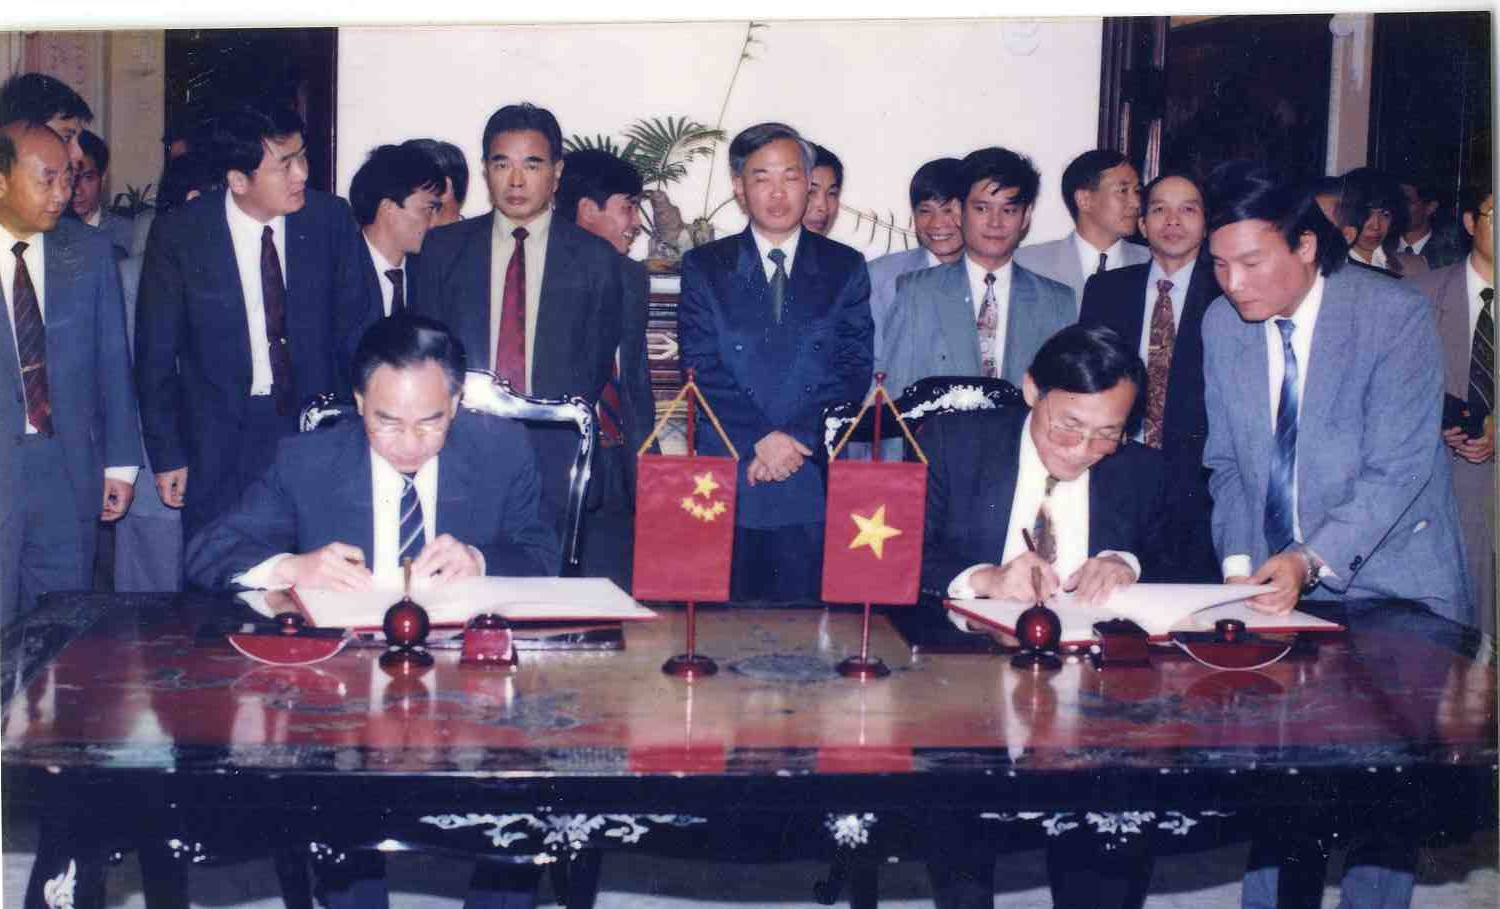 Comrade Vu Khoan attends signing ceremony of 3rd round minute of the Viet Nam - China land border negotiation at 18:30, October 26 1994